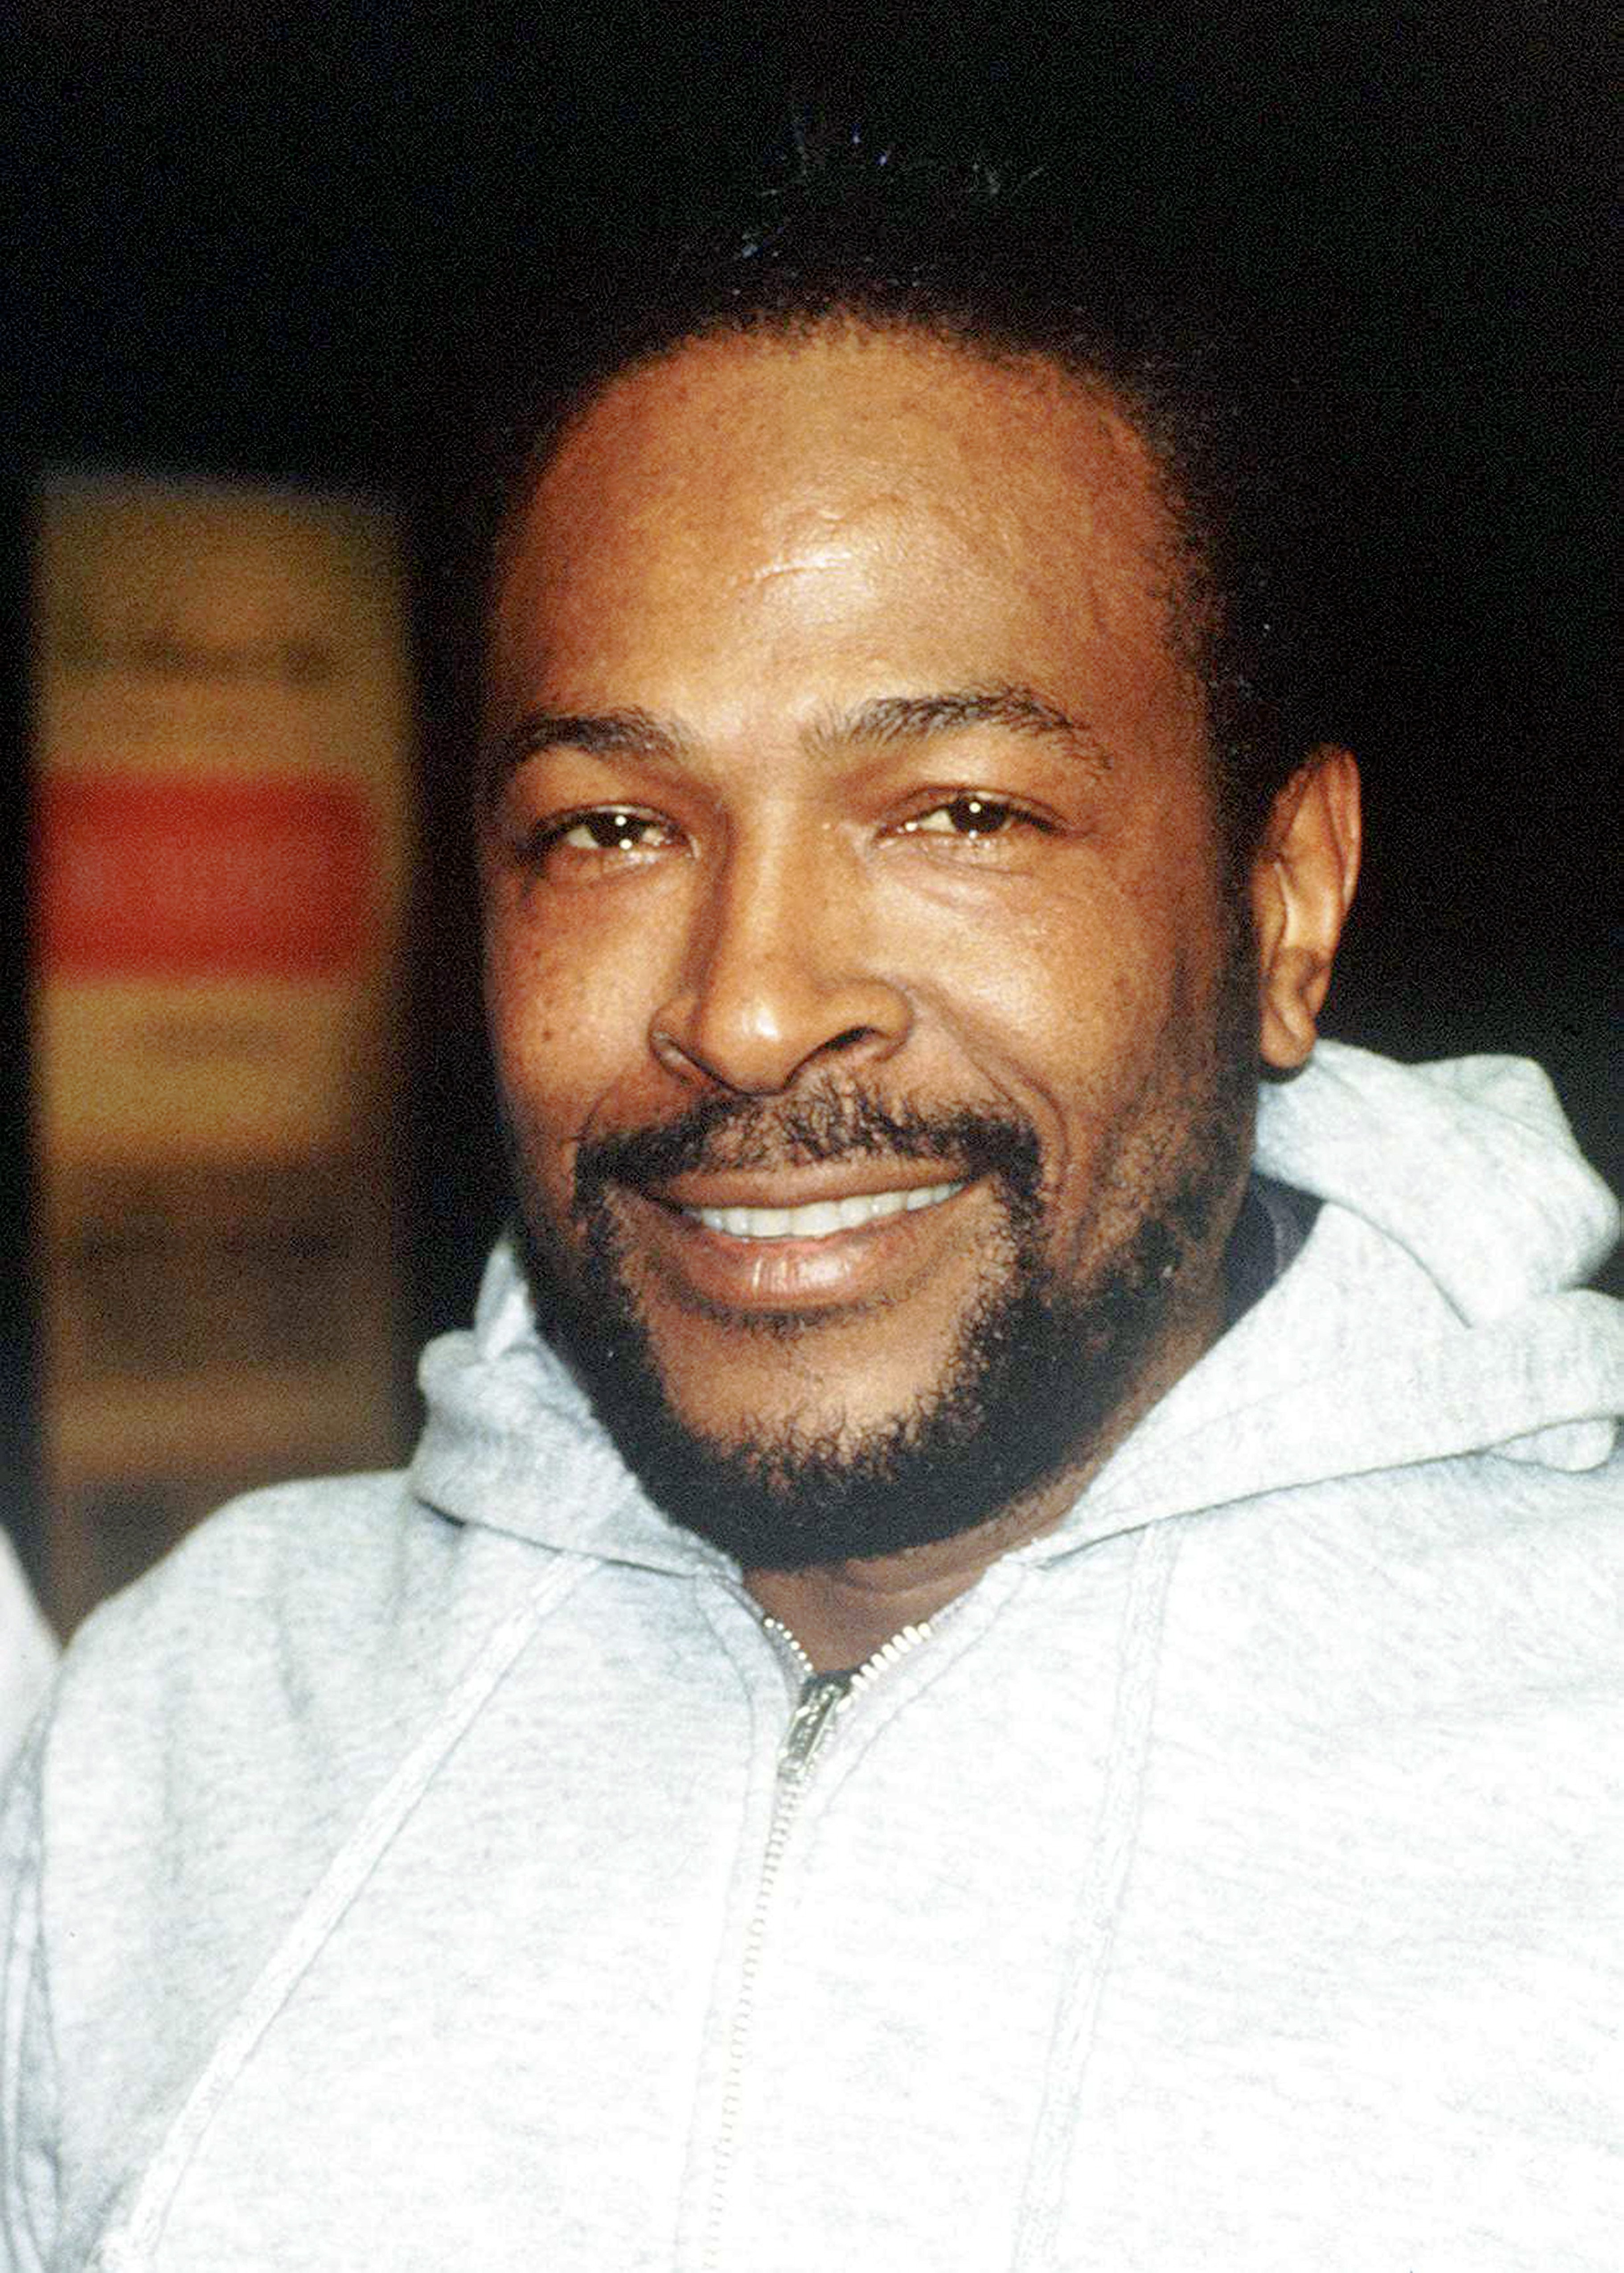 Singer Marvin Gaye (1939 - 1984), circa 1980. | Source: Getty Images